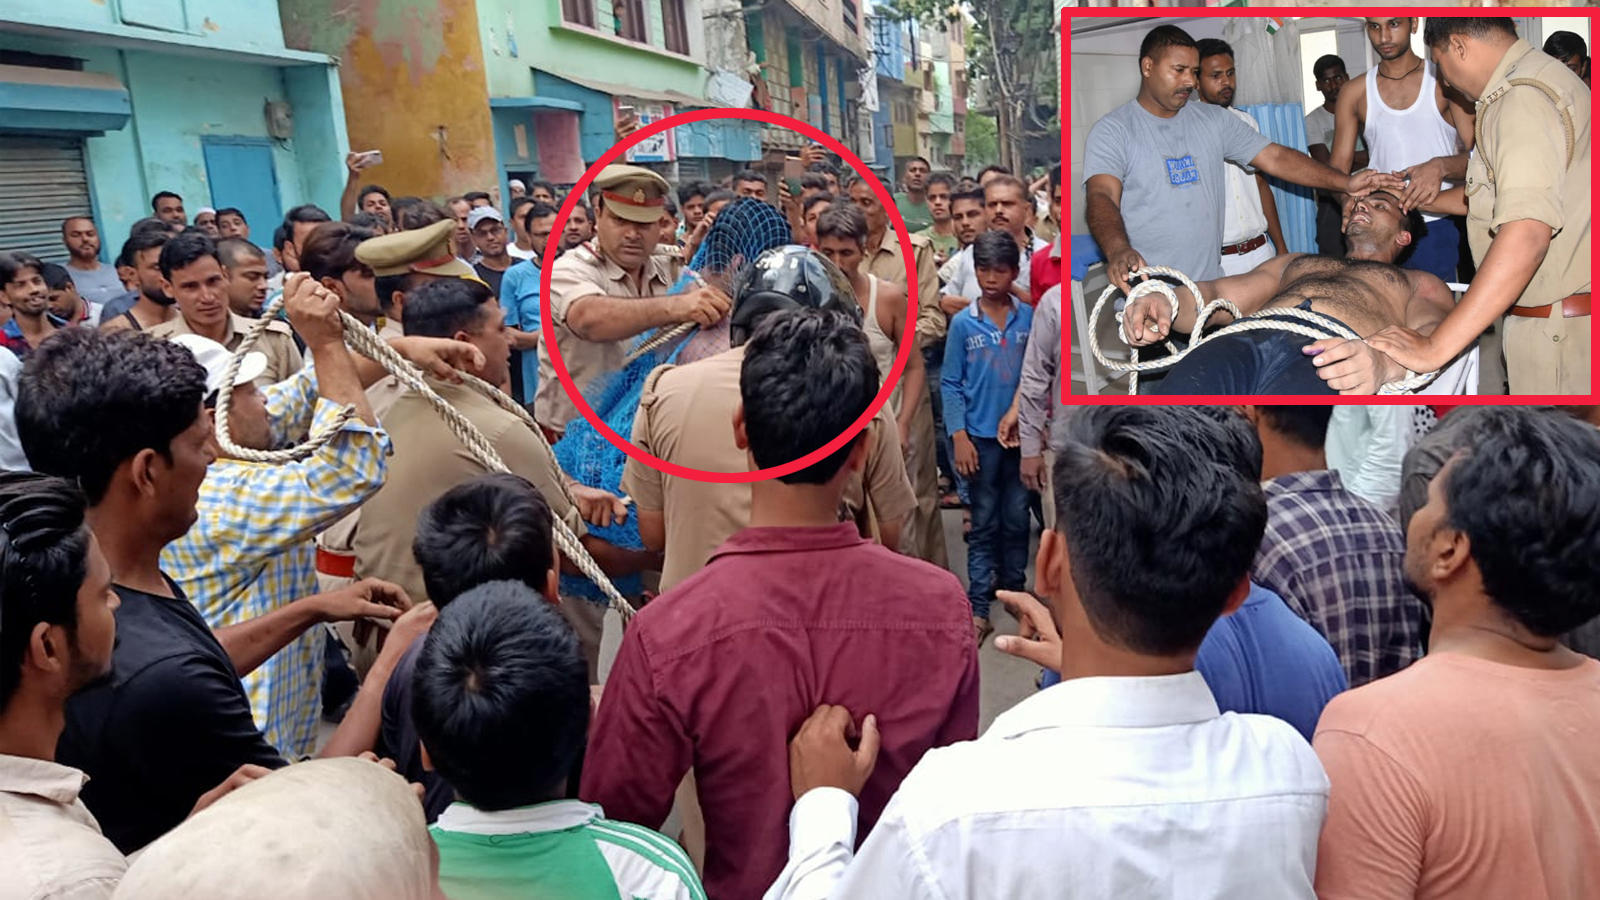 Photo of Salman Khan's Former Bodyguard Arrested In Moradabad For Creating A Ruckus In Public